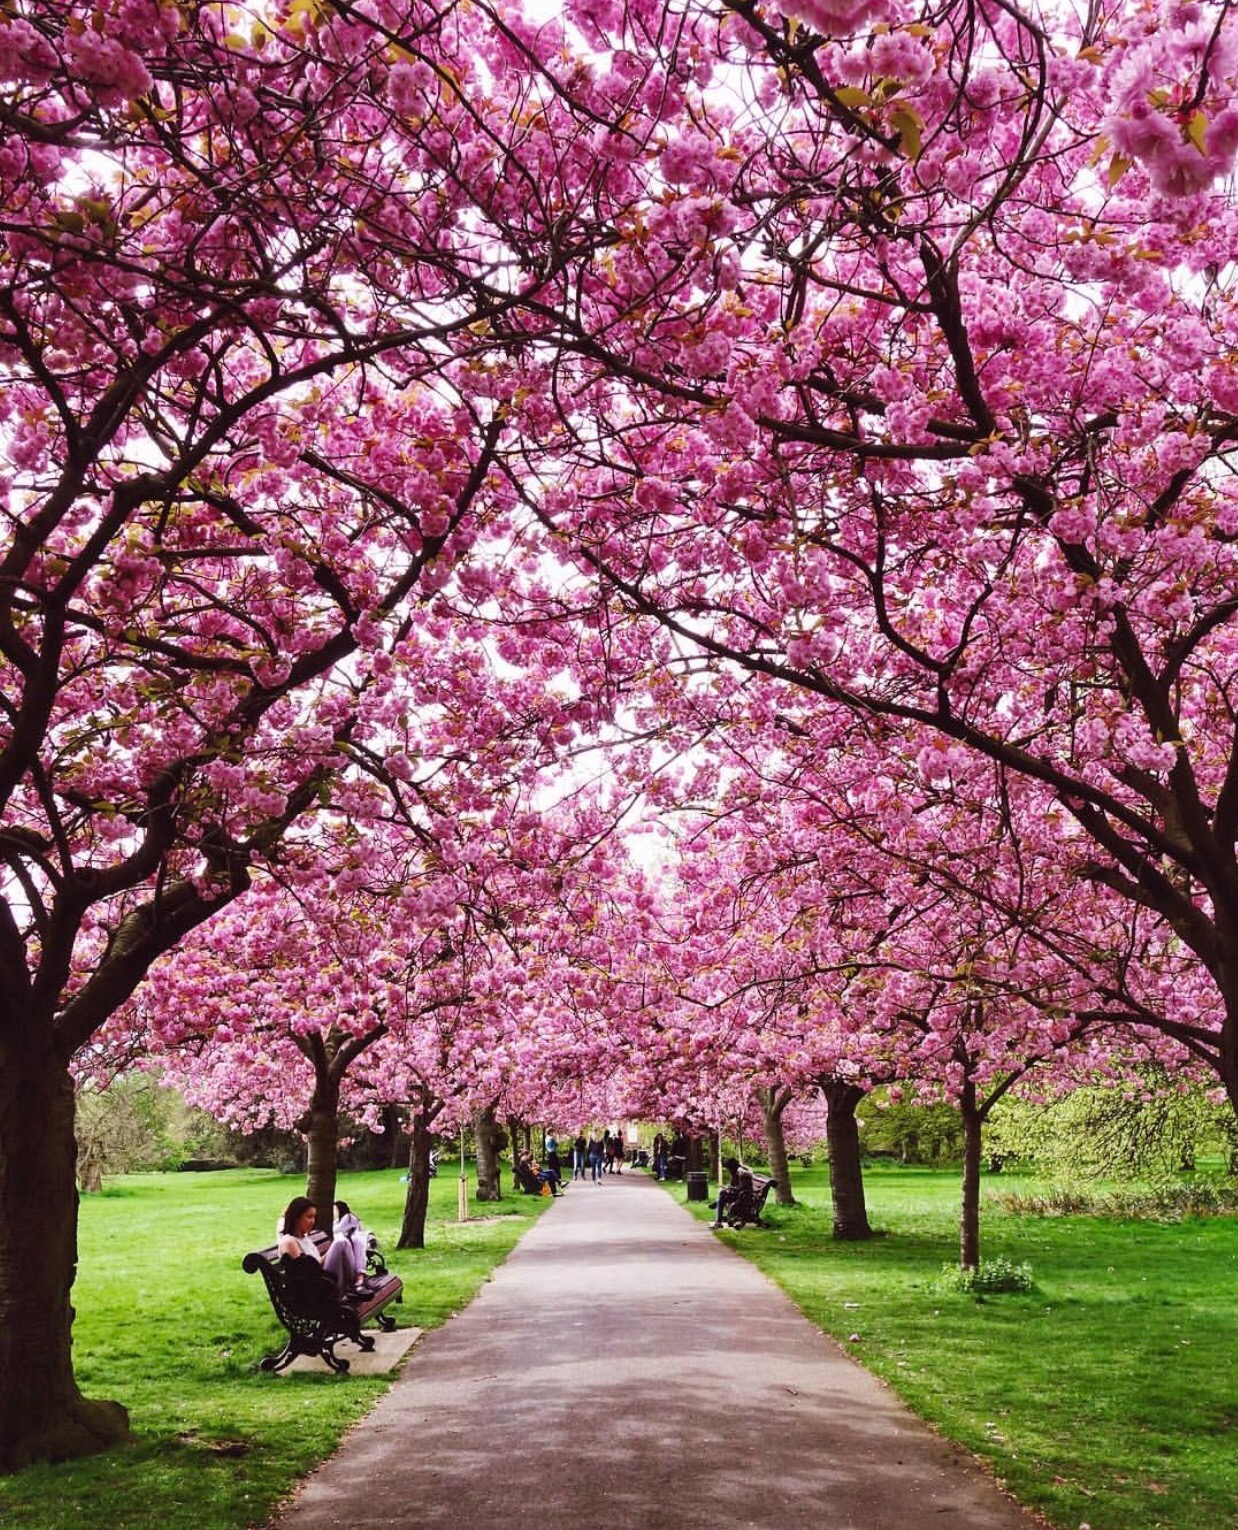 5 most beautiful places to visit in spring, spring pictures, cherry blossoms, indian blogger, british blog, spring in london